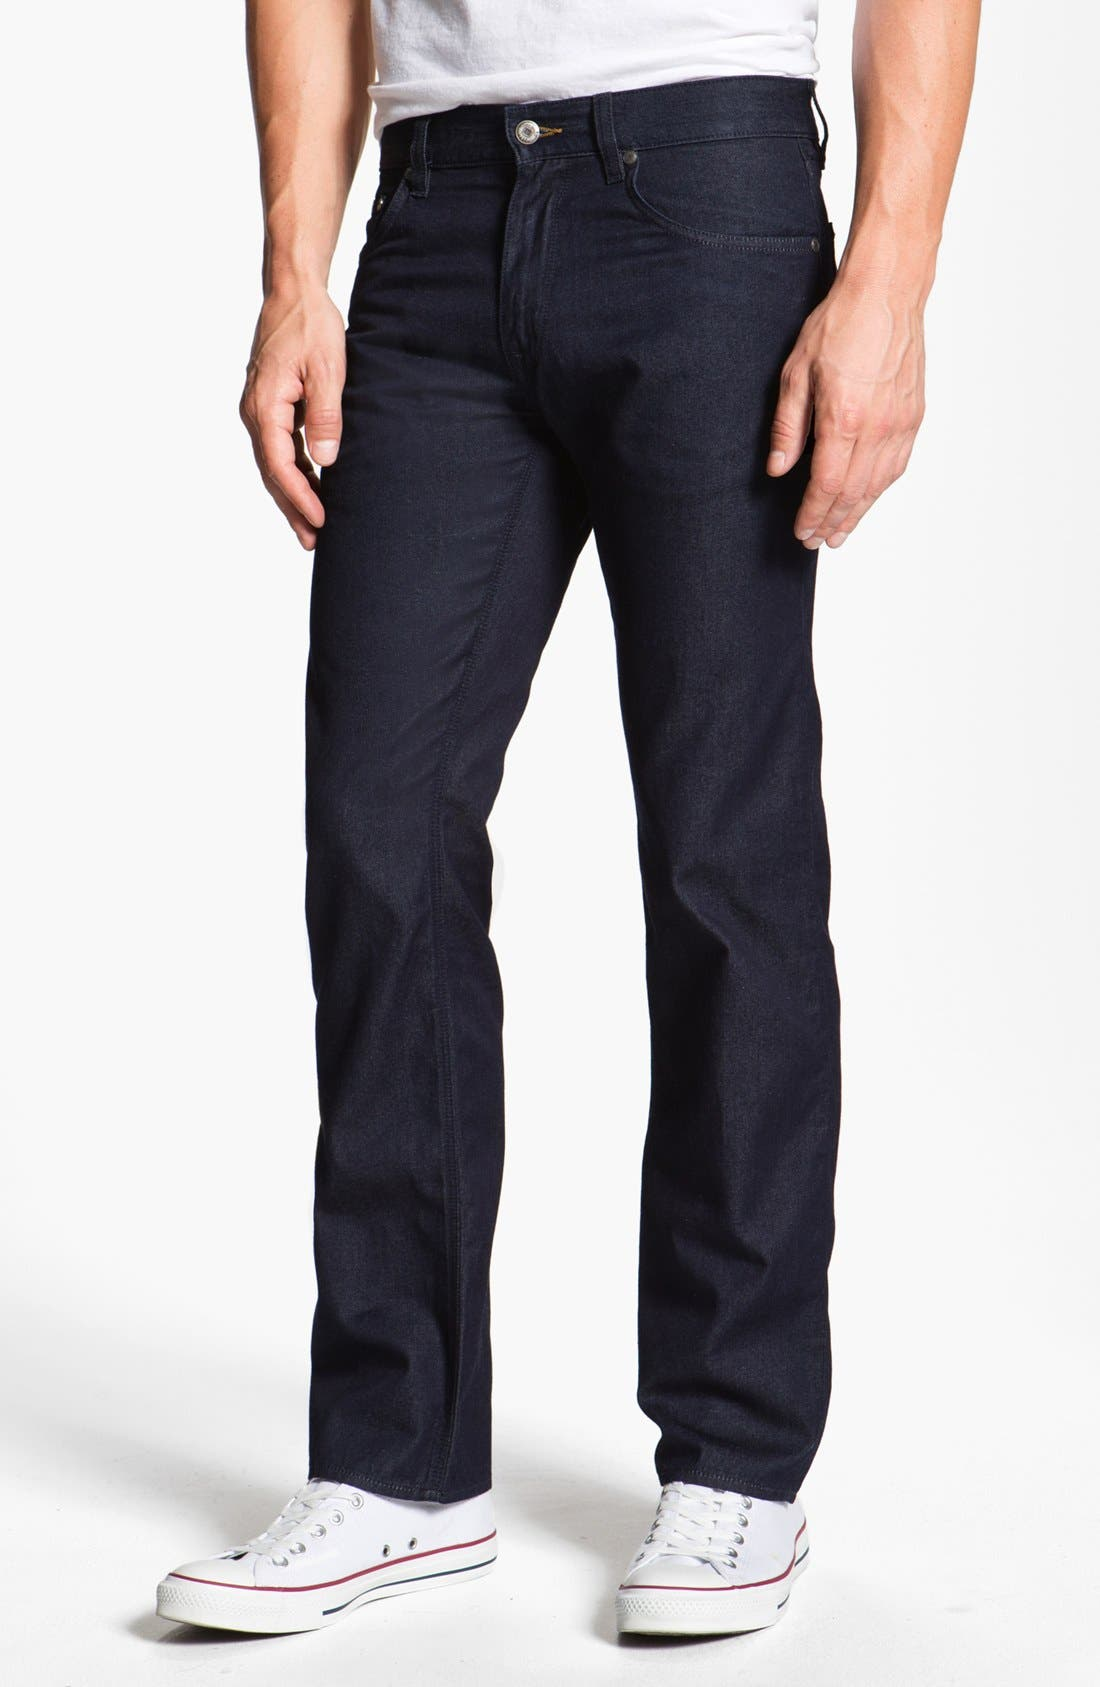 Alternate Image 1 Selected - BOSS Black 'Maine' Straight Leg Jeans (Dark Rinse)